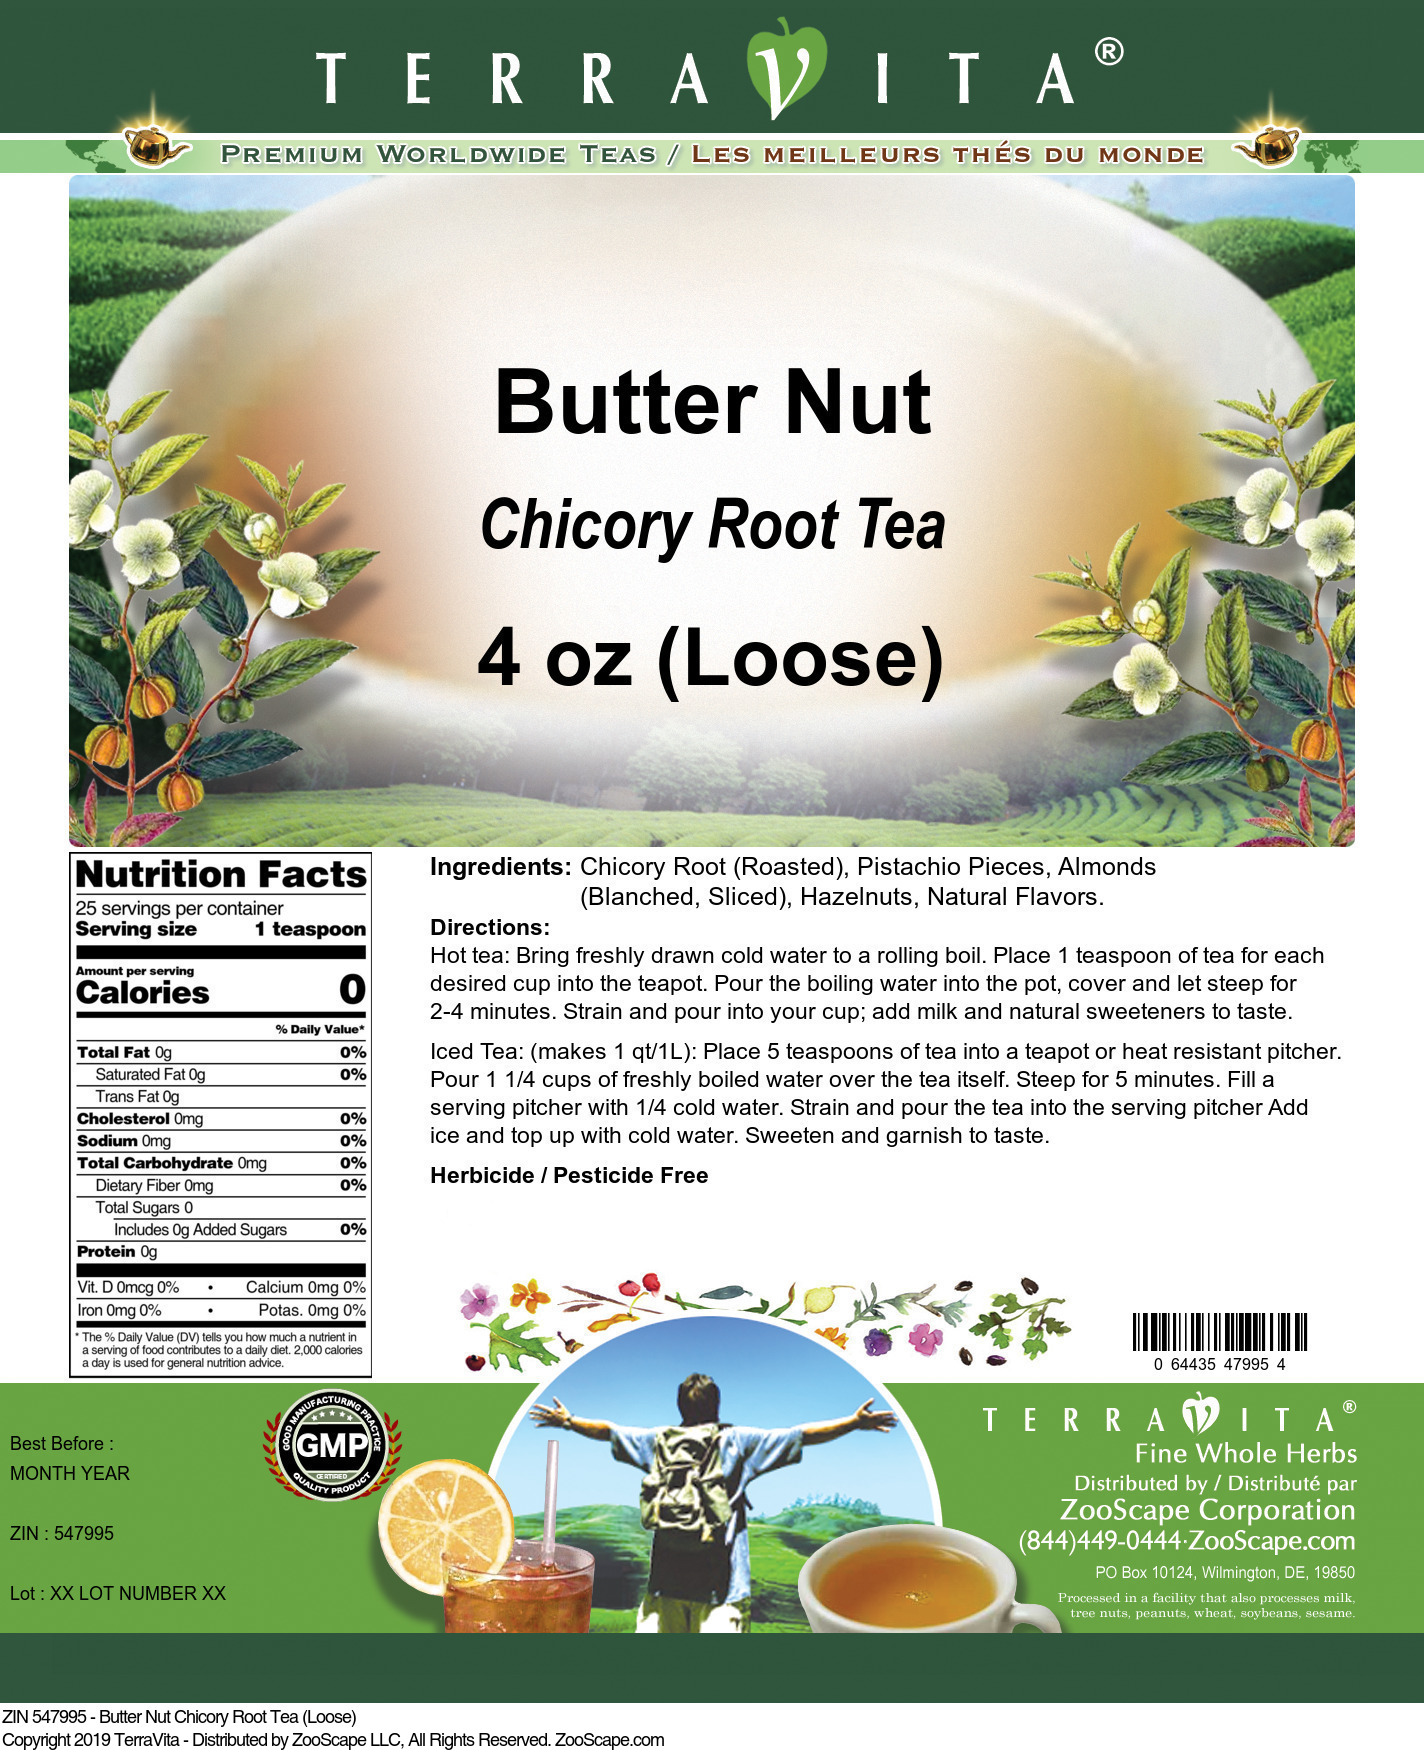 Butter Nut Chicory Root Tea (Loose)